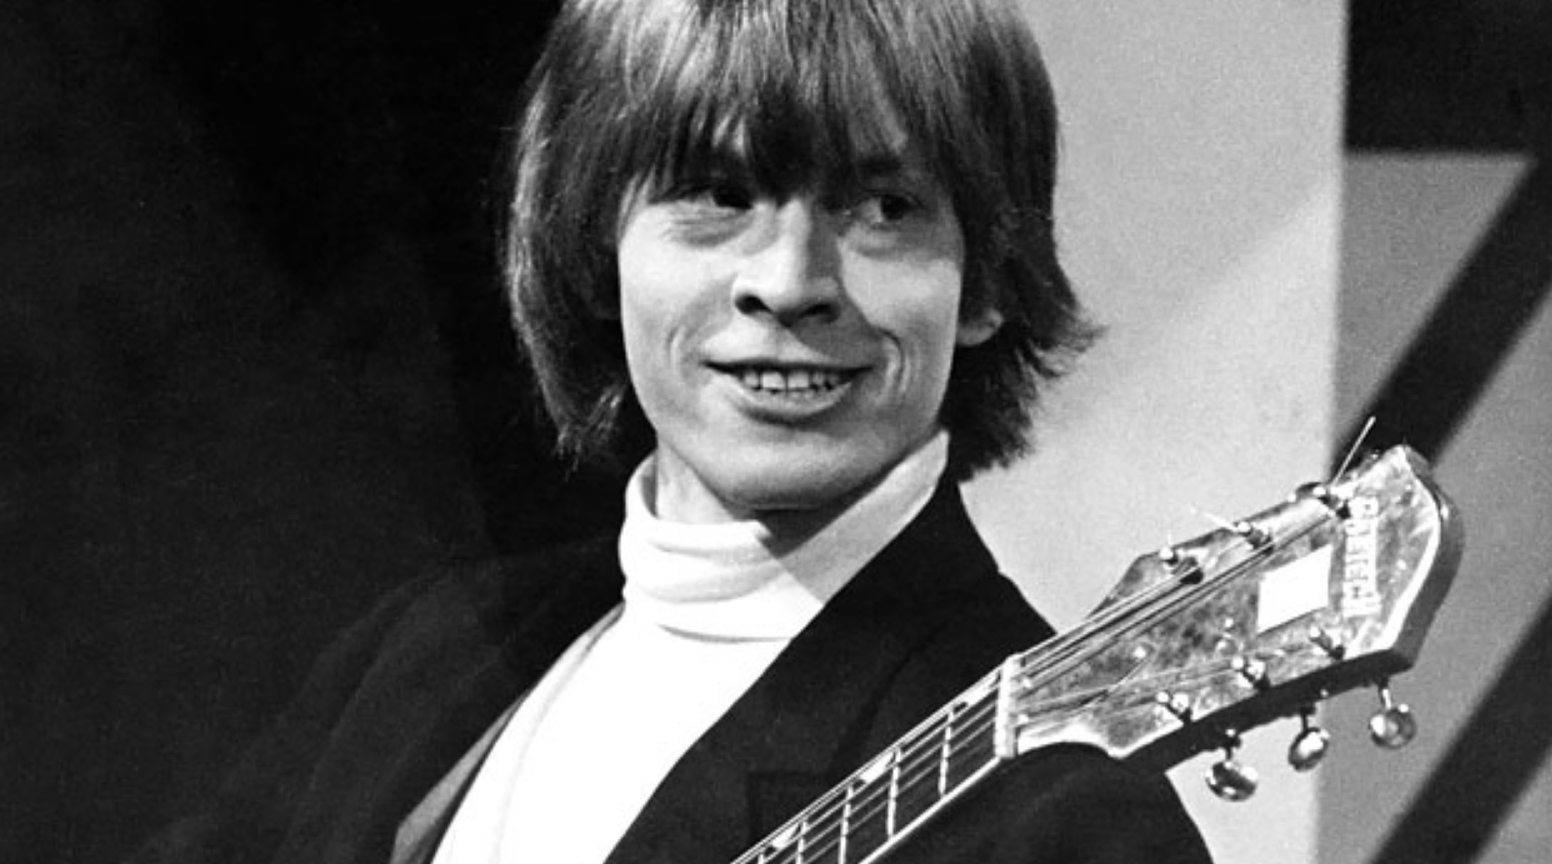 Daughter of Rolling Stones founder Brian Jones claims her father was murdered